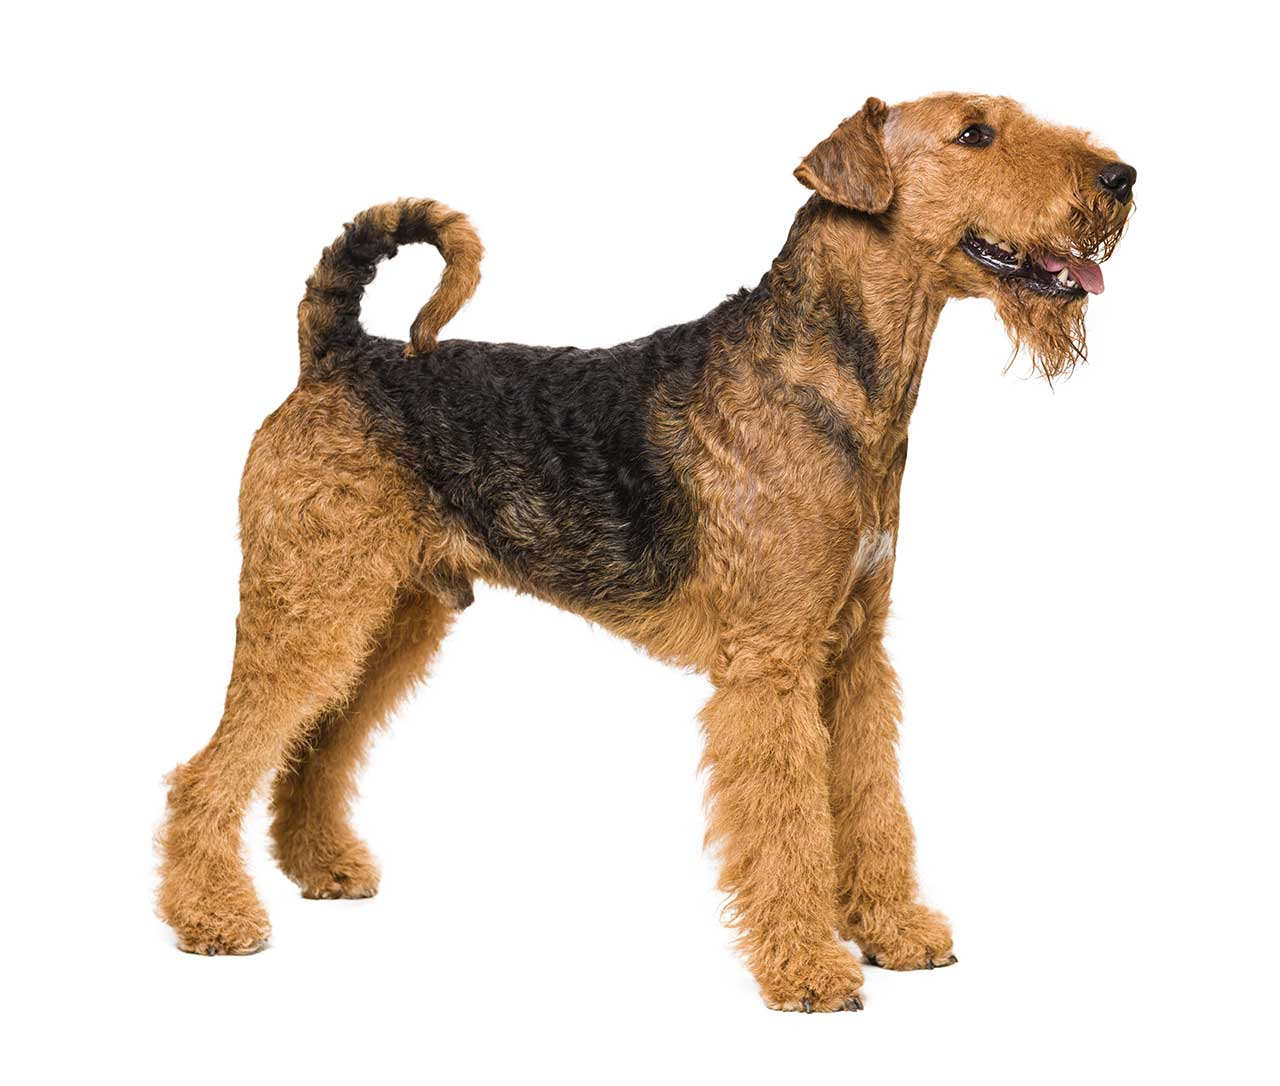 Airedale Terrier Dog Breed Pictures Photos Amp Images